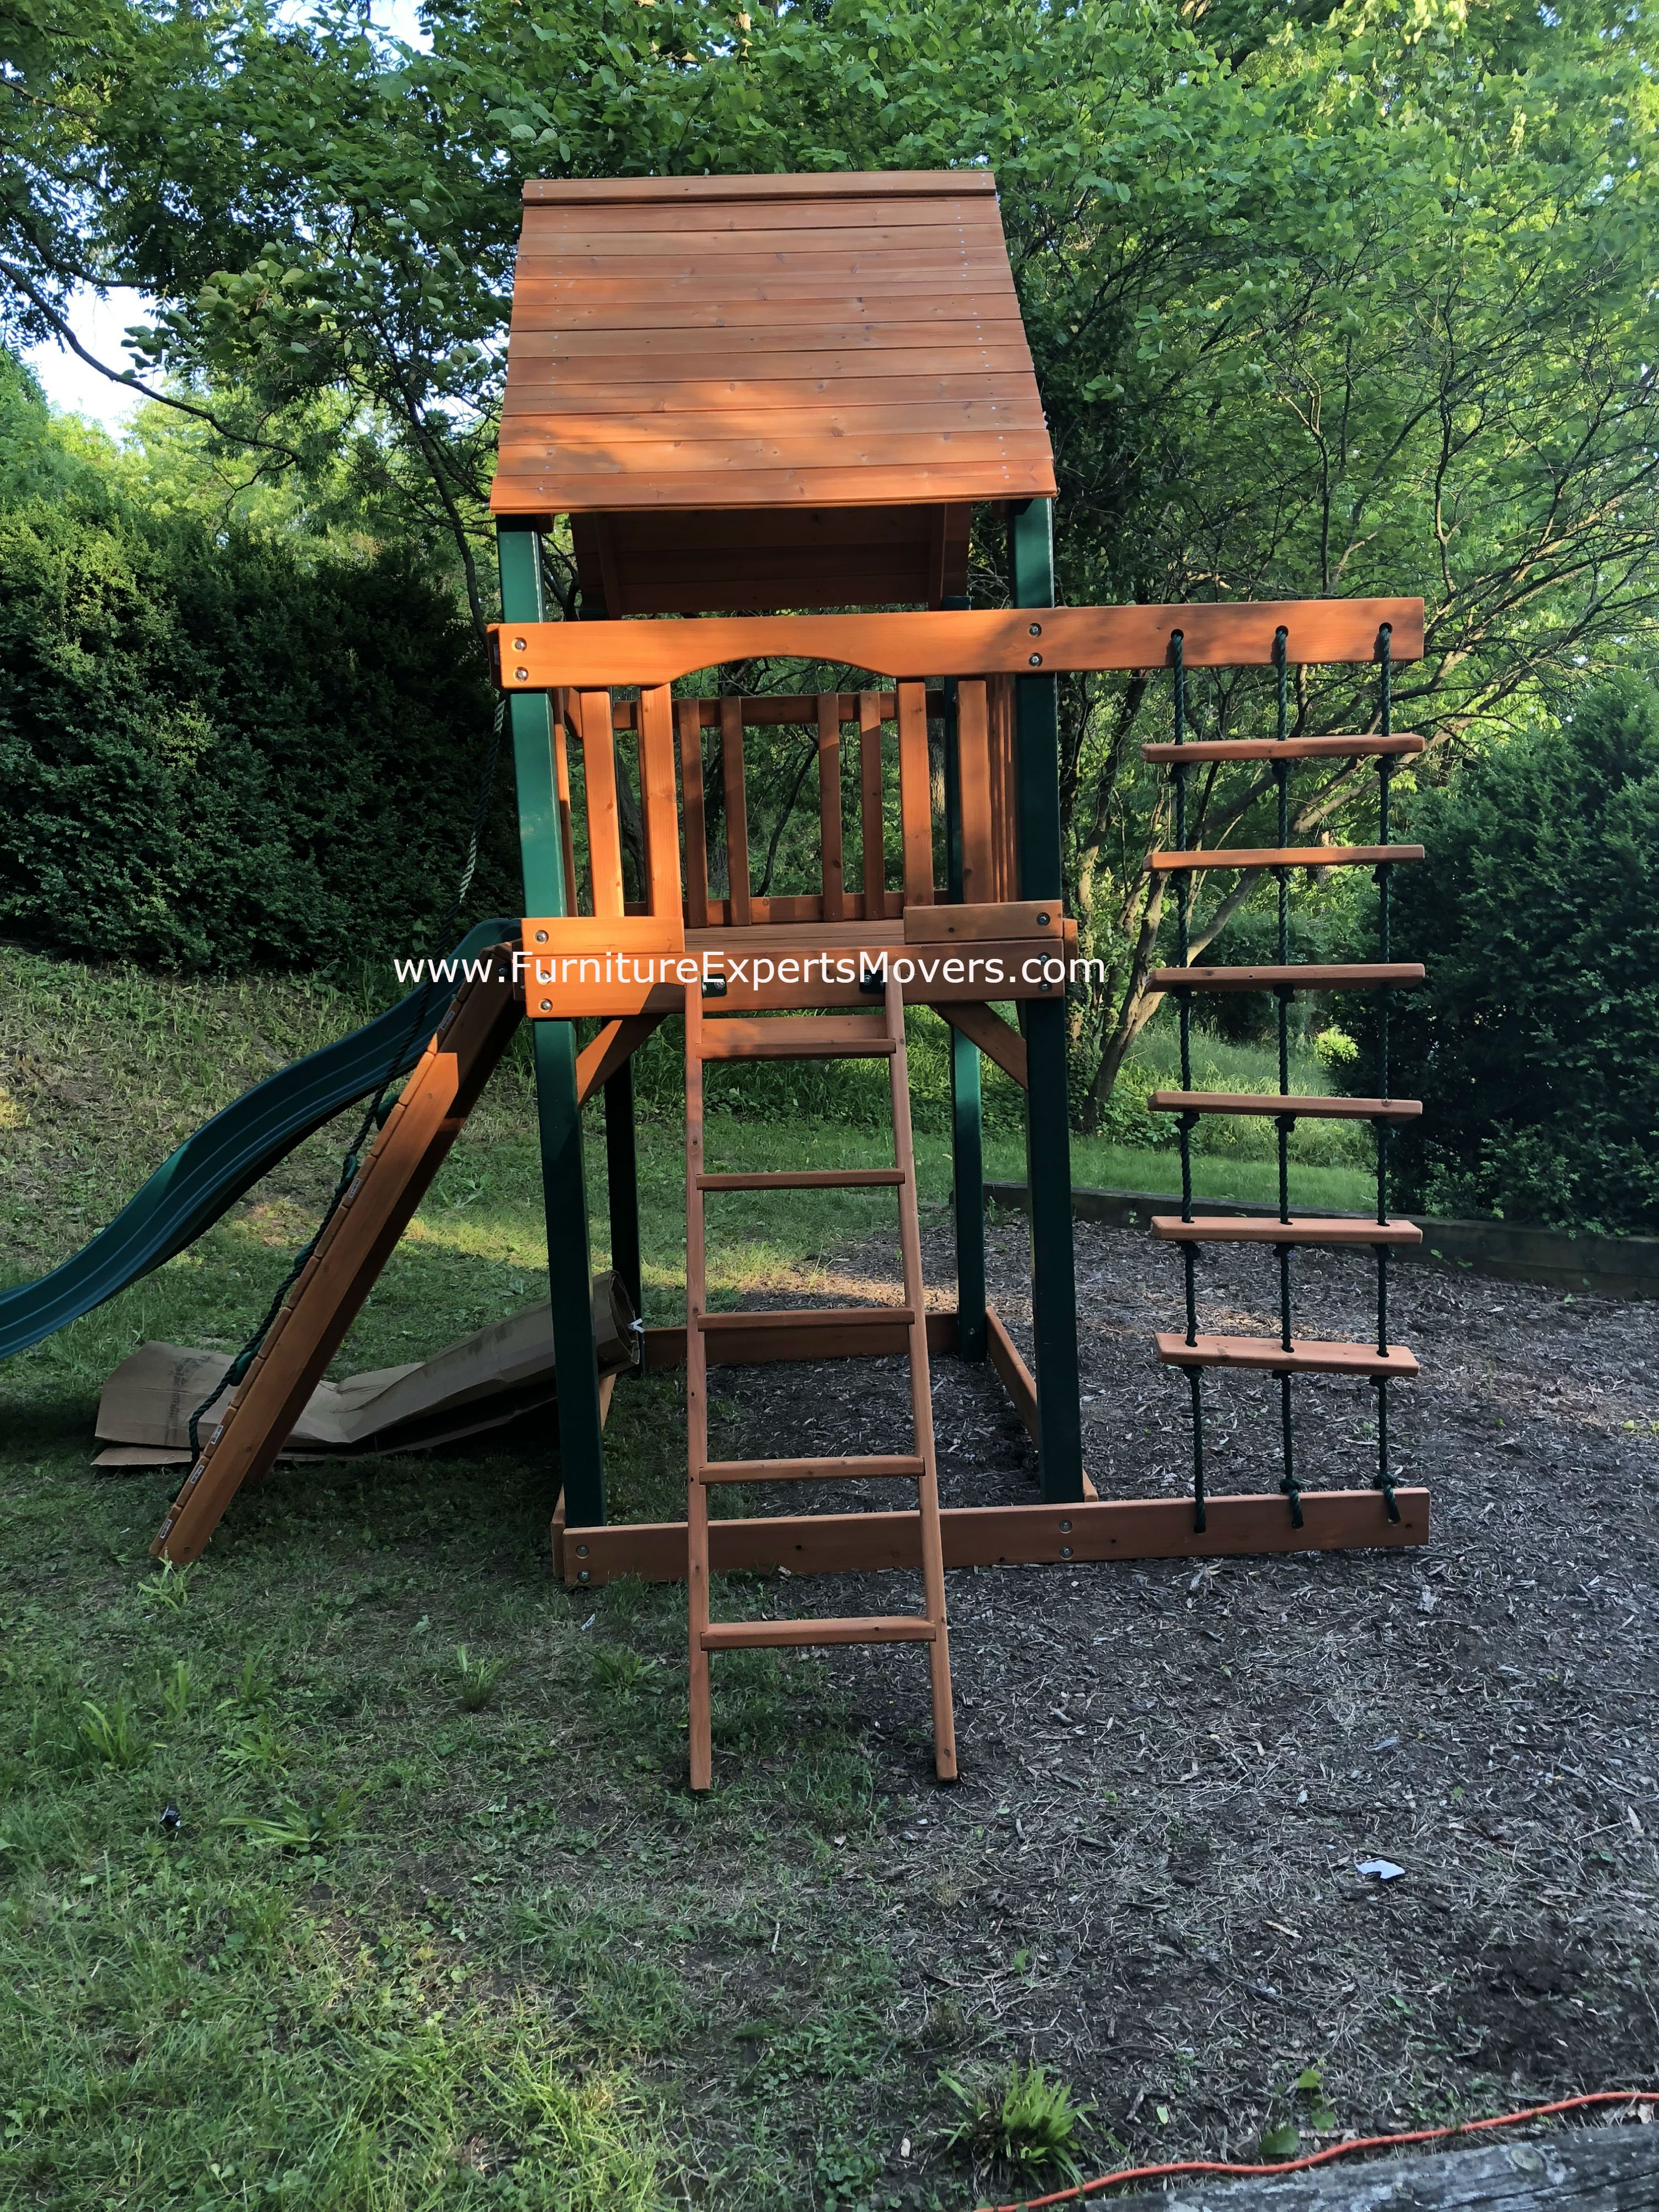 gorilla Chateau Tower Cedar Playset moving and installation